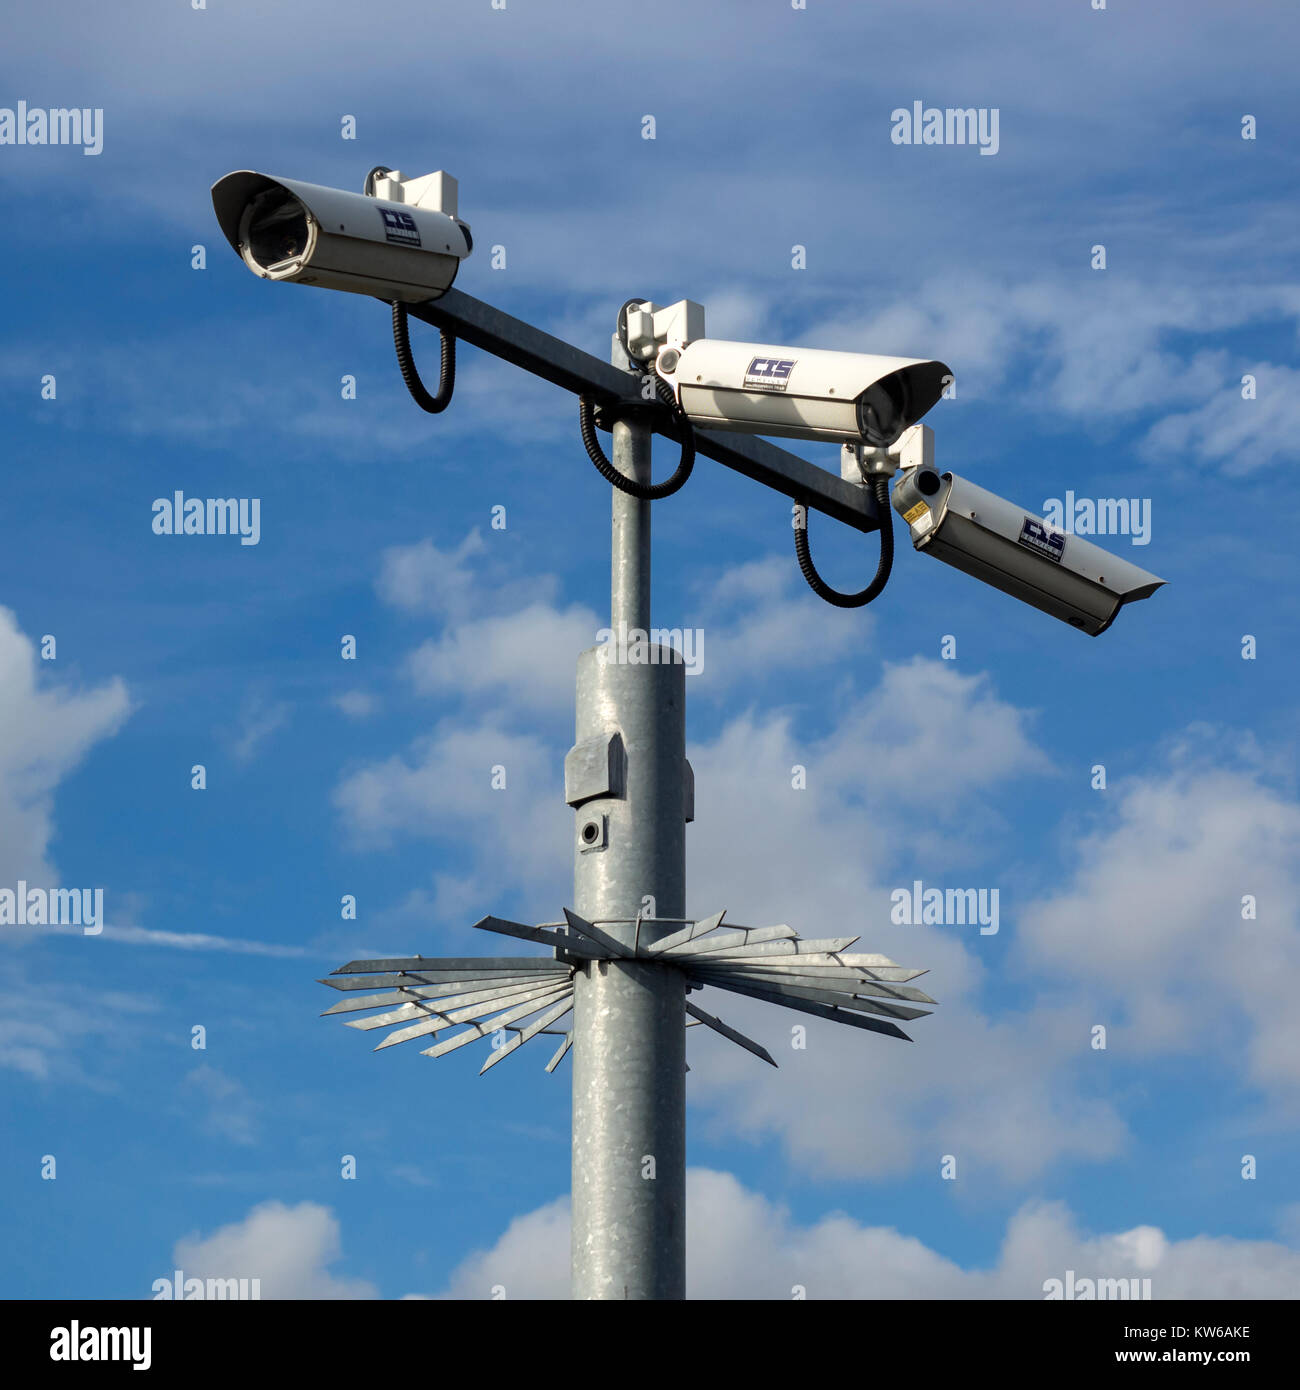 Closed Circuit Video Surveillance camera on pole  with anti-climb protection in the UK Stock Photo